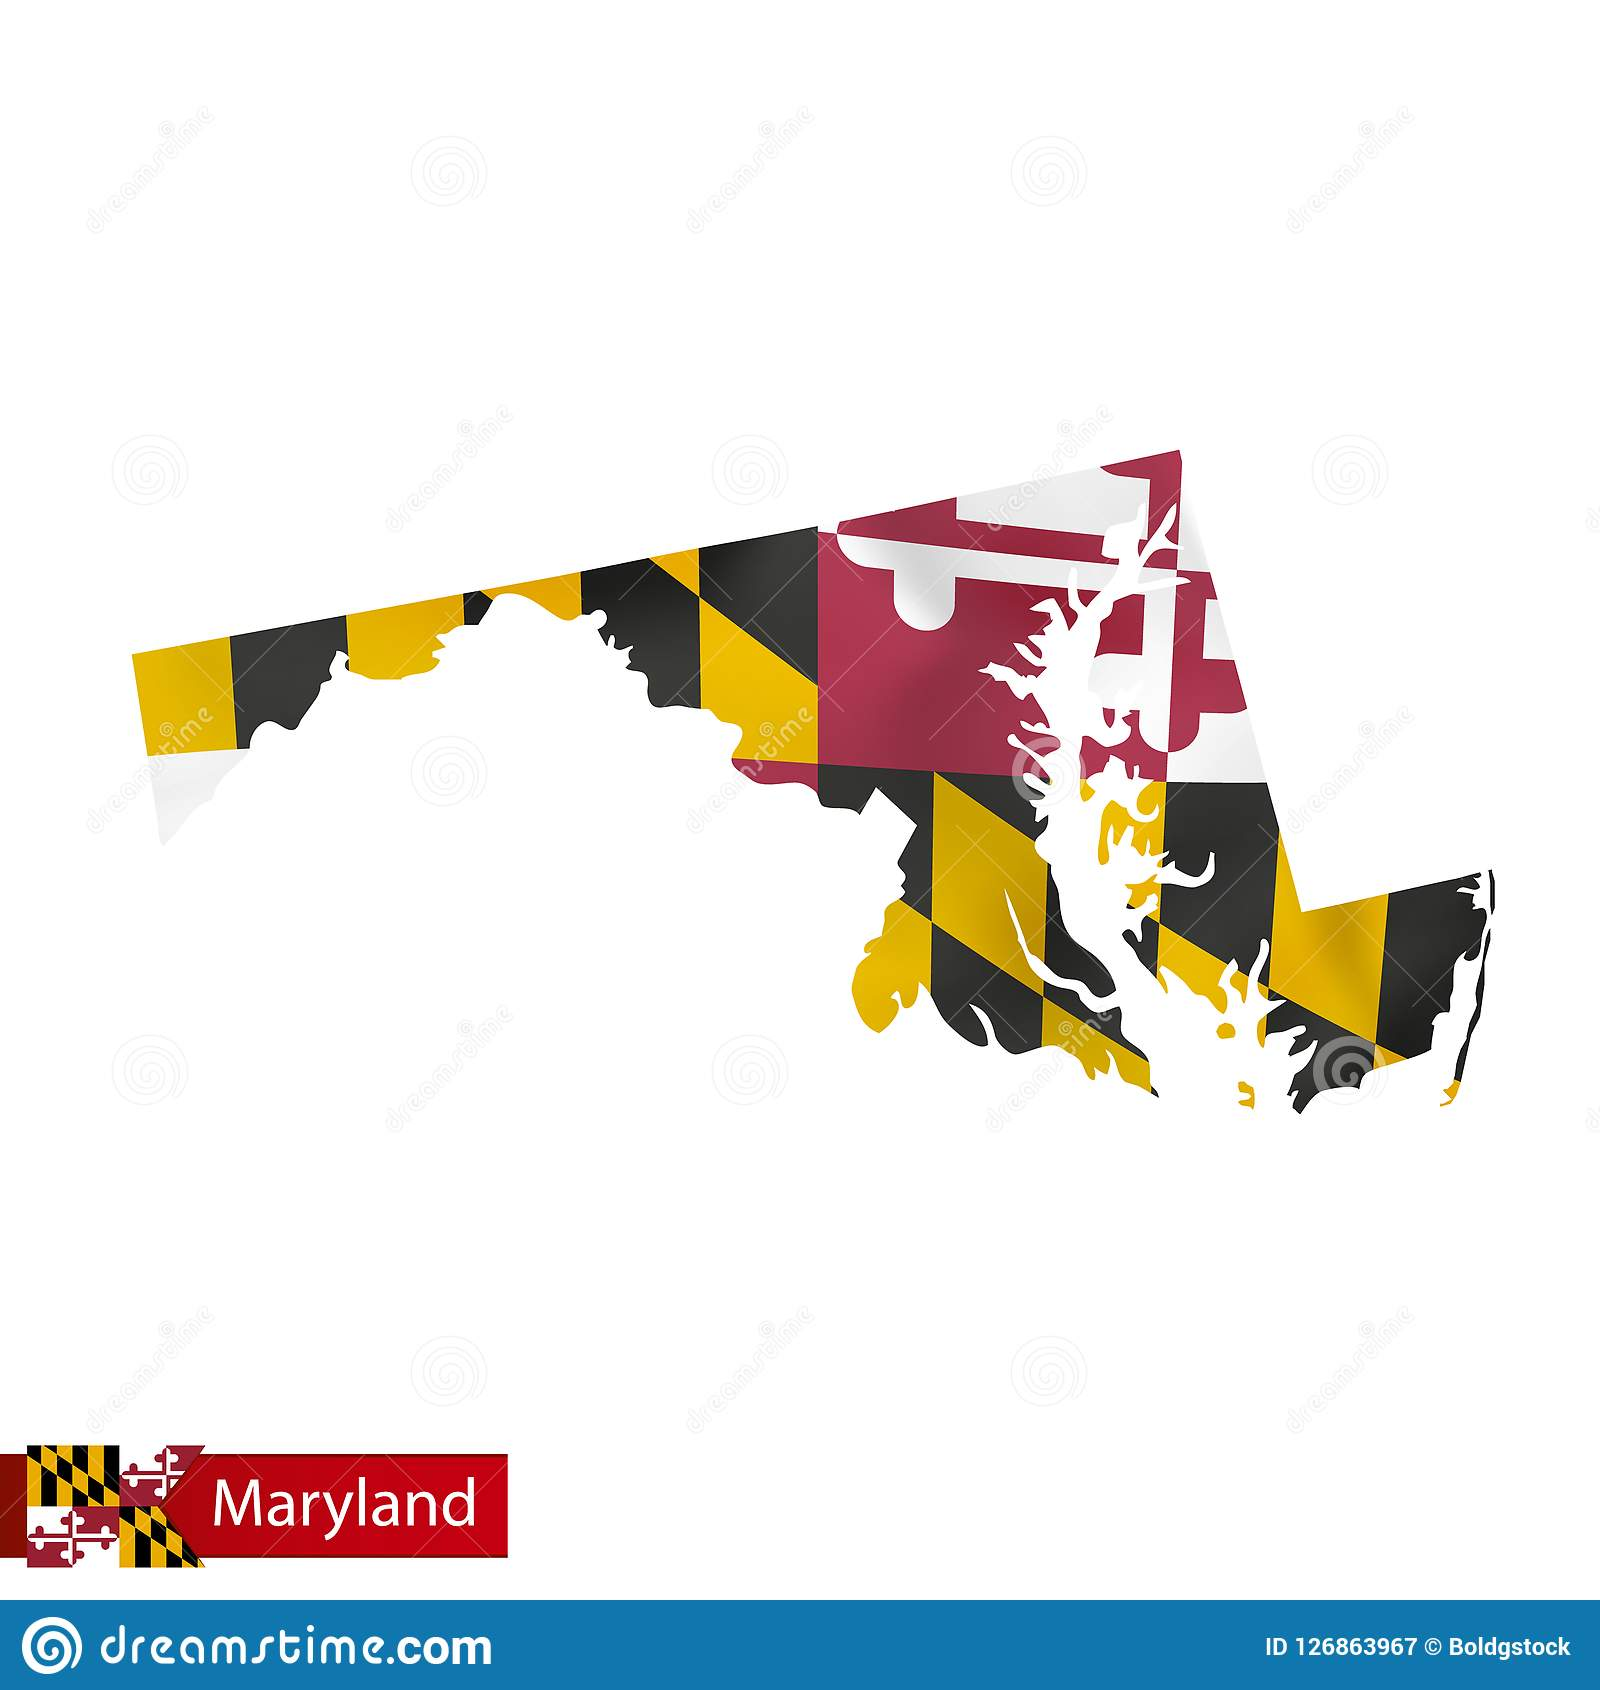 Maryland State Map With Waving Flag Of US State. Stock ... on graffiti of maryland, layout of maryland, landscape of maryland, graph of maryland, icons of maryland, clipart of maryland, food of maryland, drawing of maryland, cartoon of maryland,